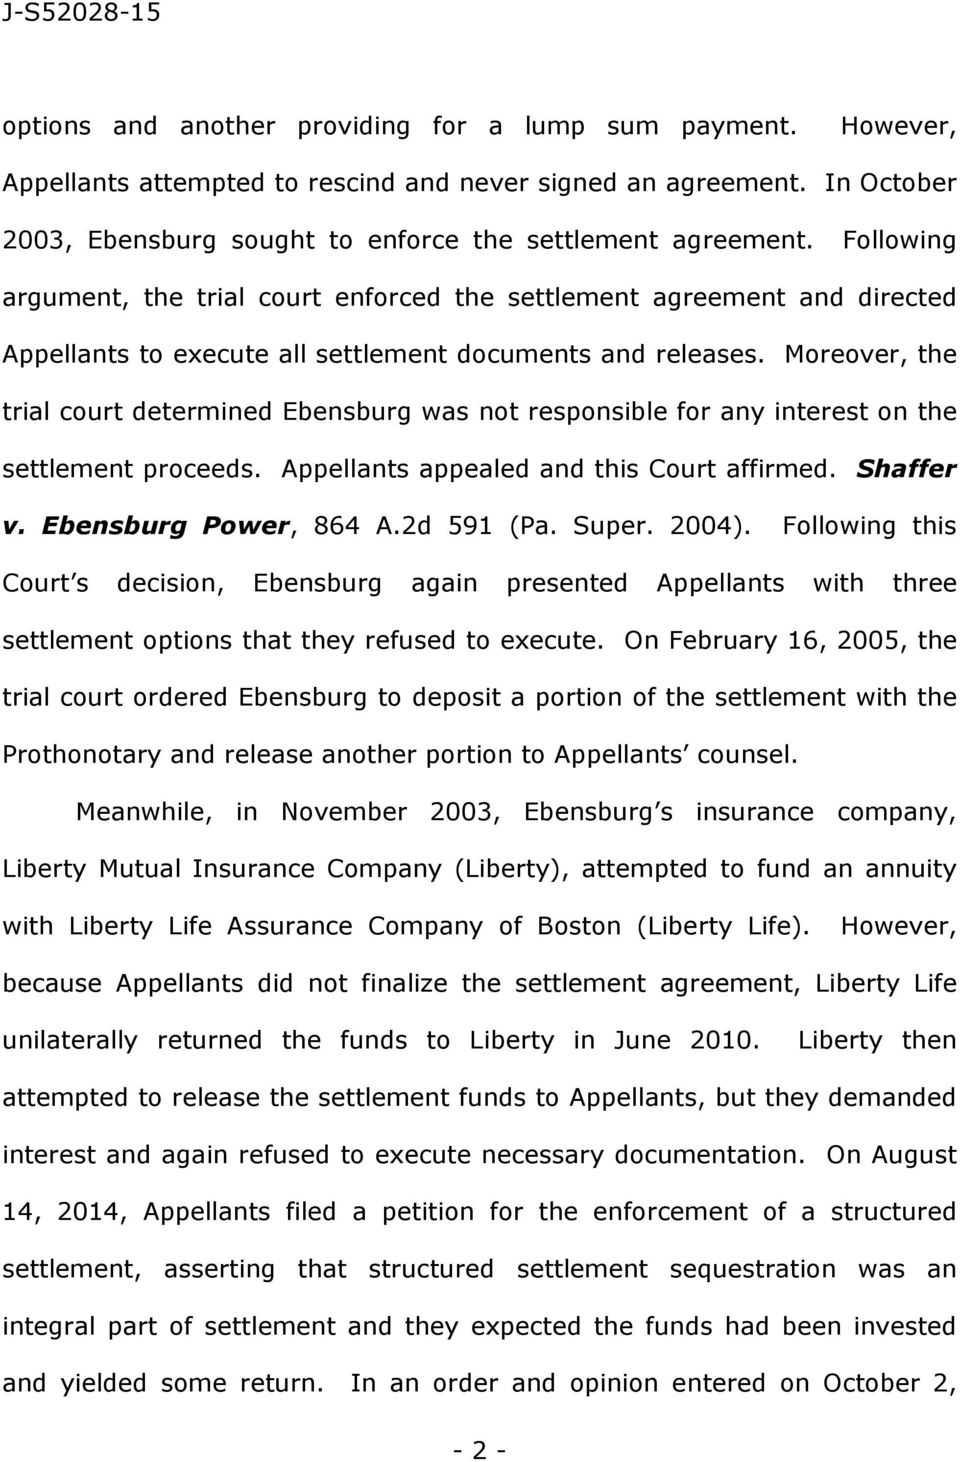 Moreover, the trial court determined Ebensburg was not responsible for any interest on the settlement proceeds. Appellants appealed and this Court affirmed. Shaffer v. Ebensburg Power, 864 A.